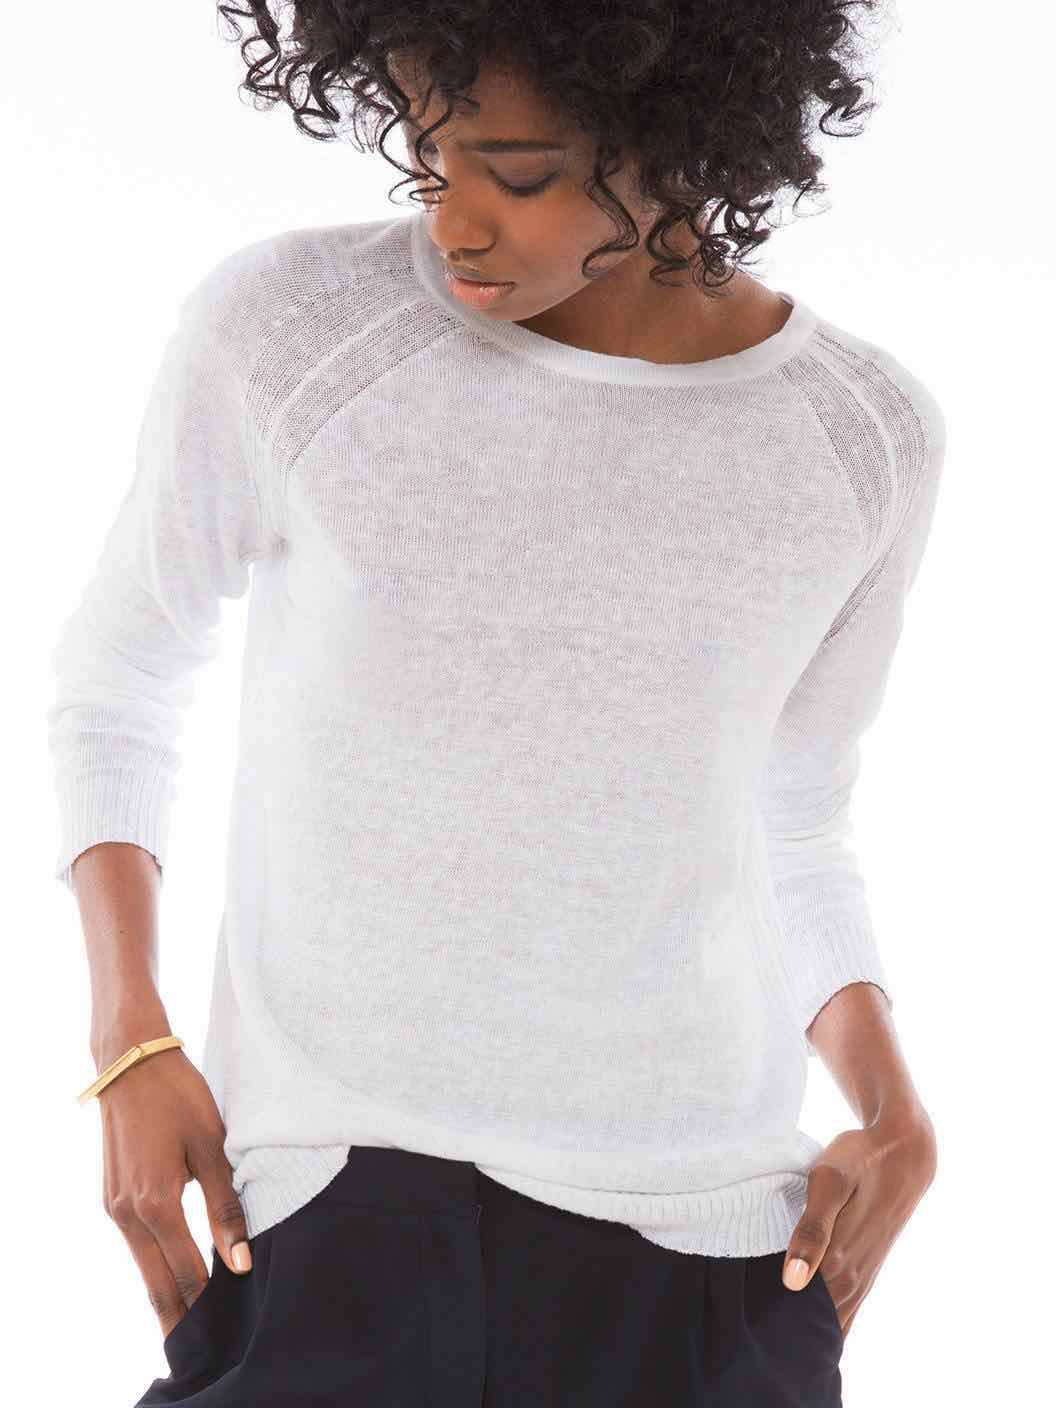 Minimalist Linen Sweater | ZADY - Covetboard Minimalist Fashion Lifestyle